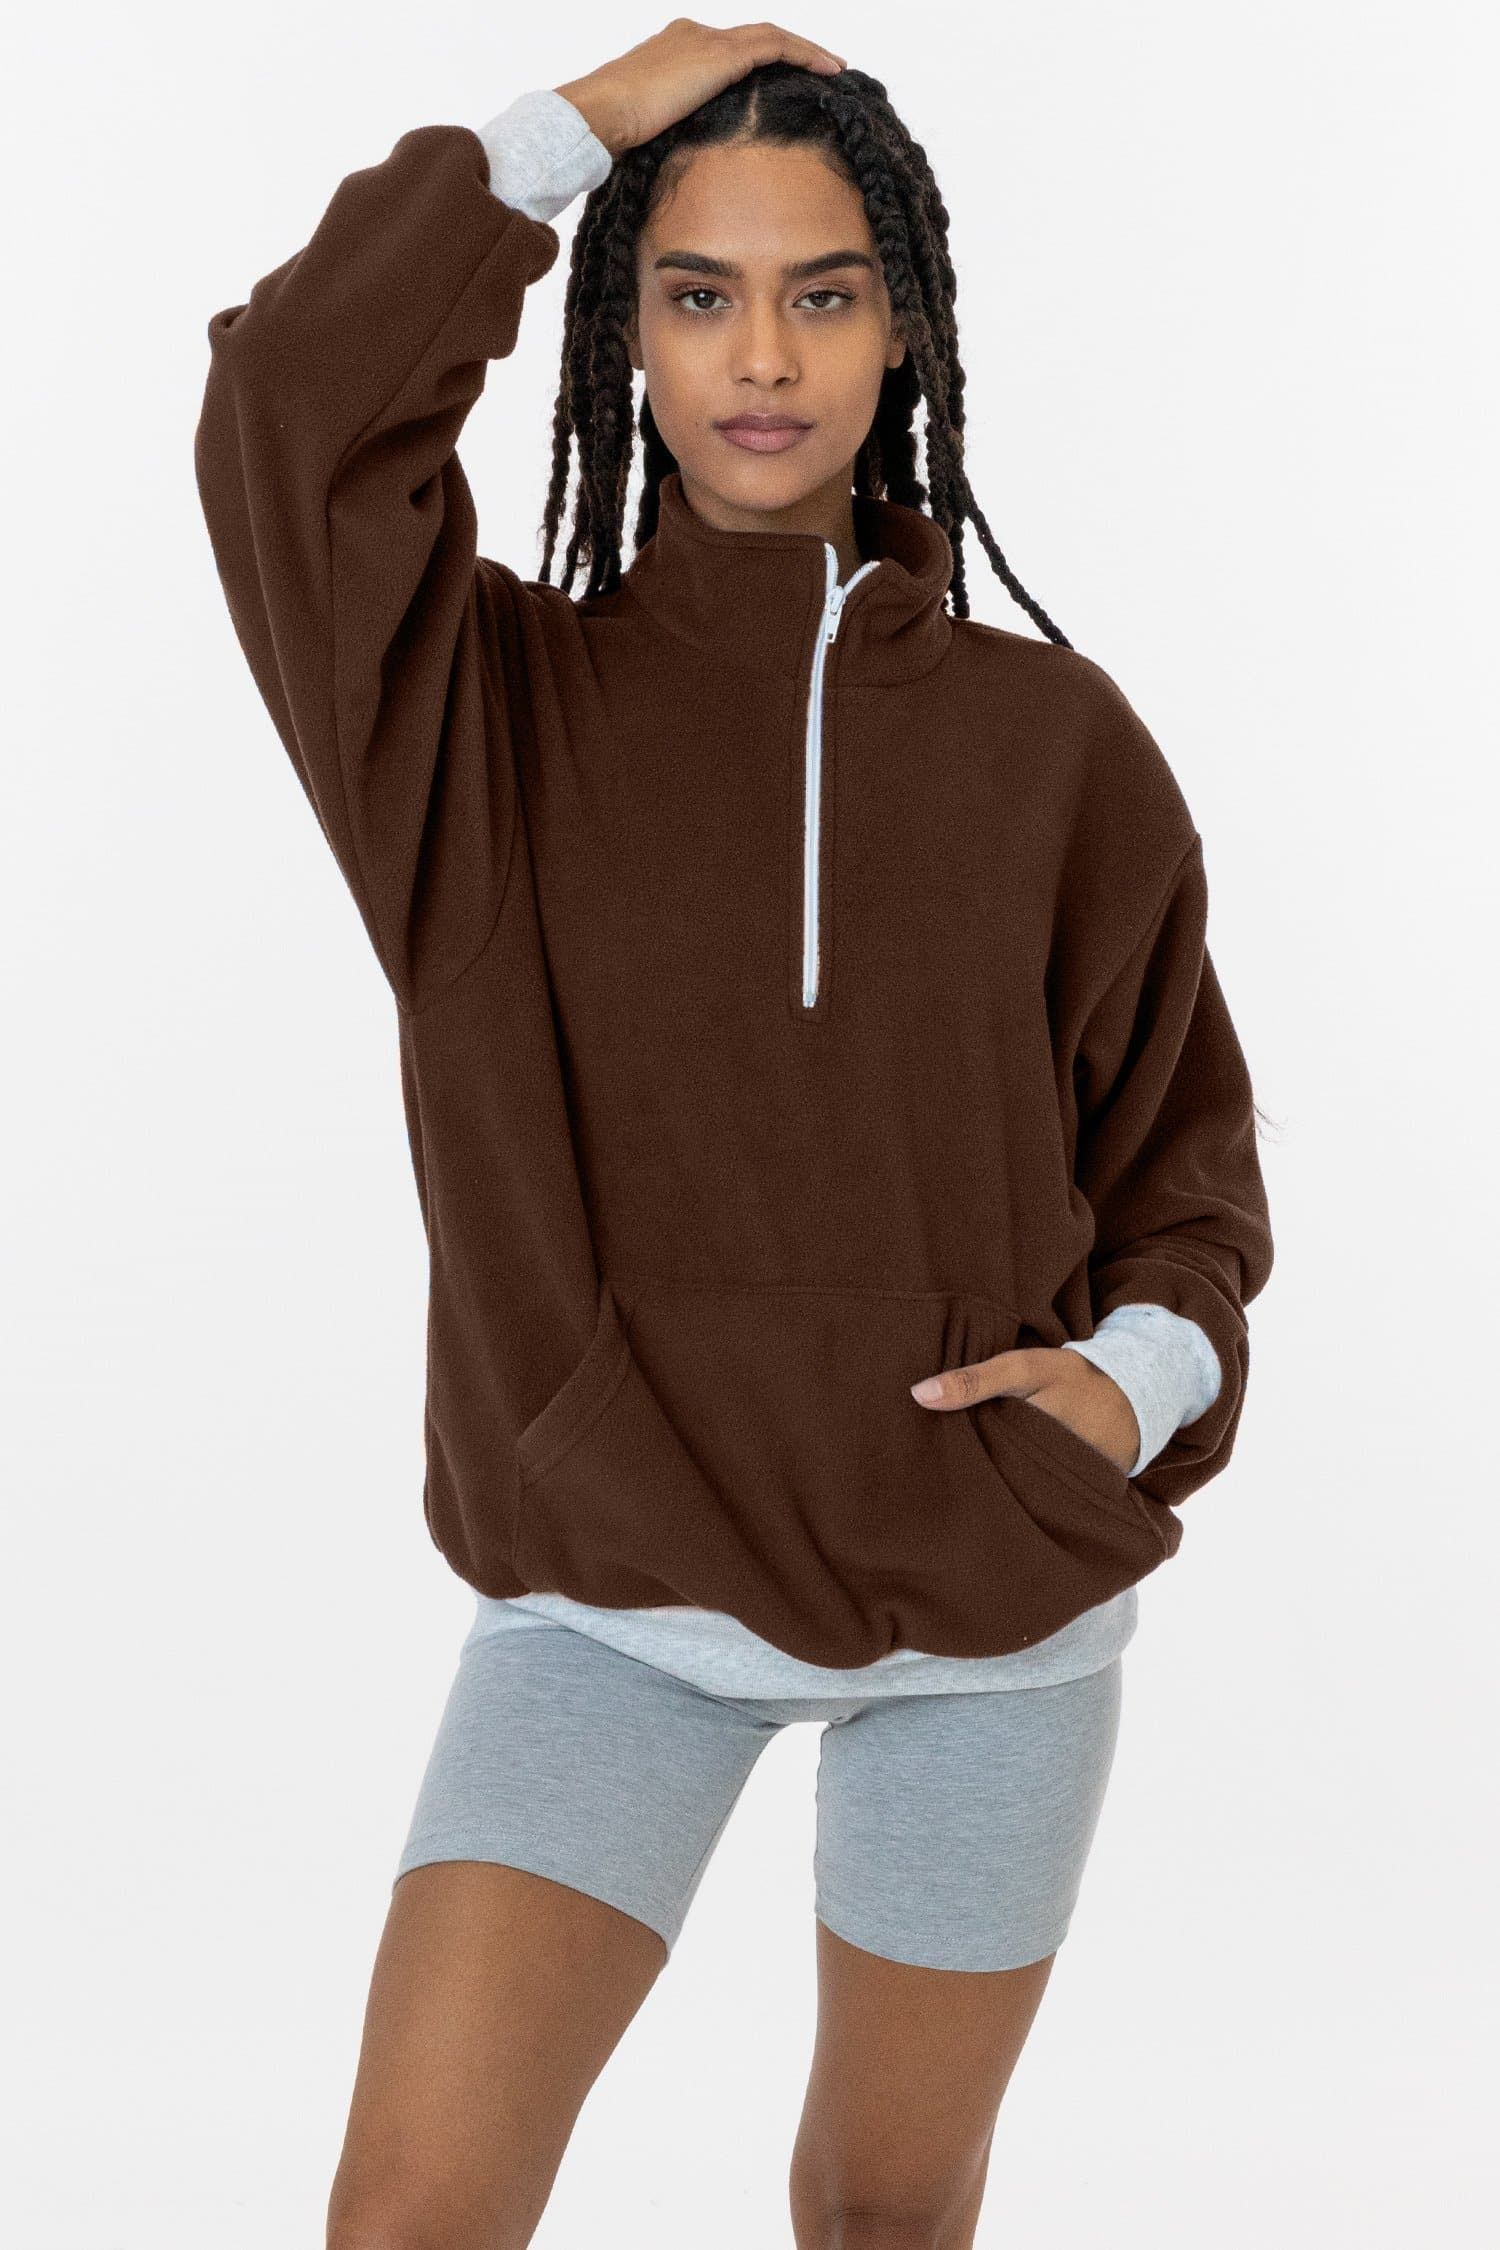 PF408 - Polar Fleece Half Zip Pullover - Brown _ XL